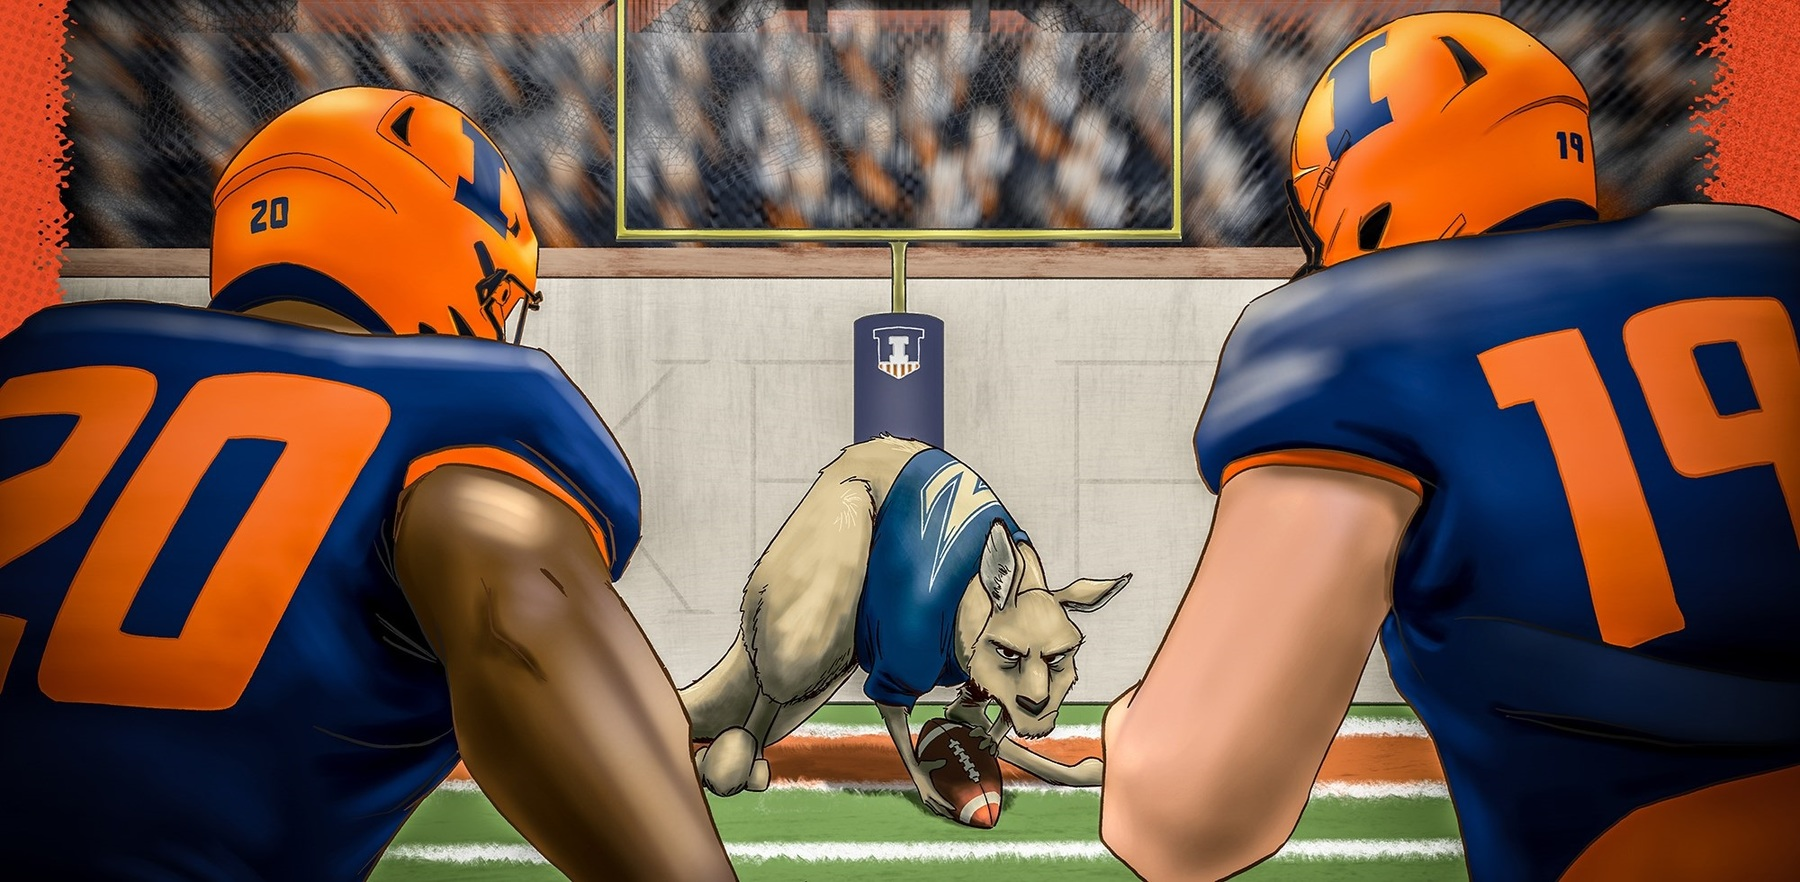 graphic image of illini linebackers staring down the Akron Zips mascot, Zippy, which appears to be a kangaroo